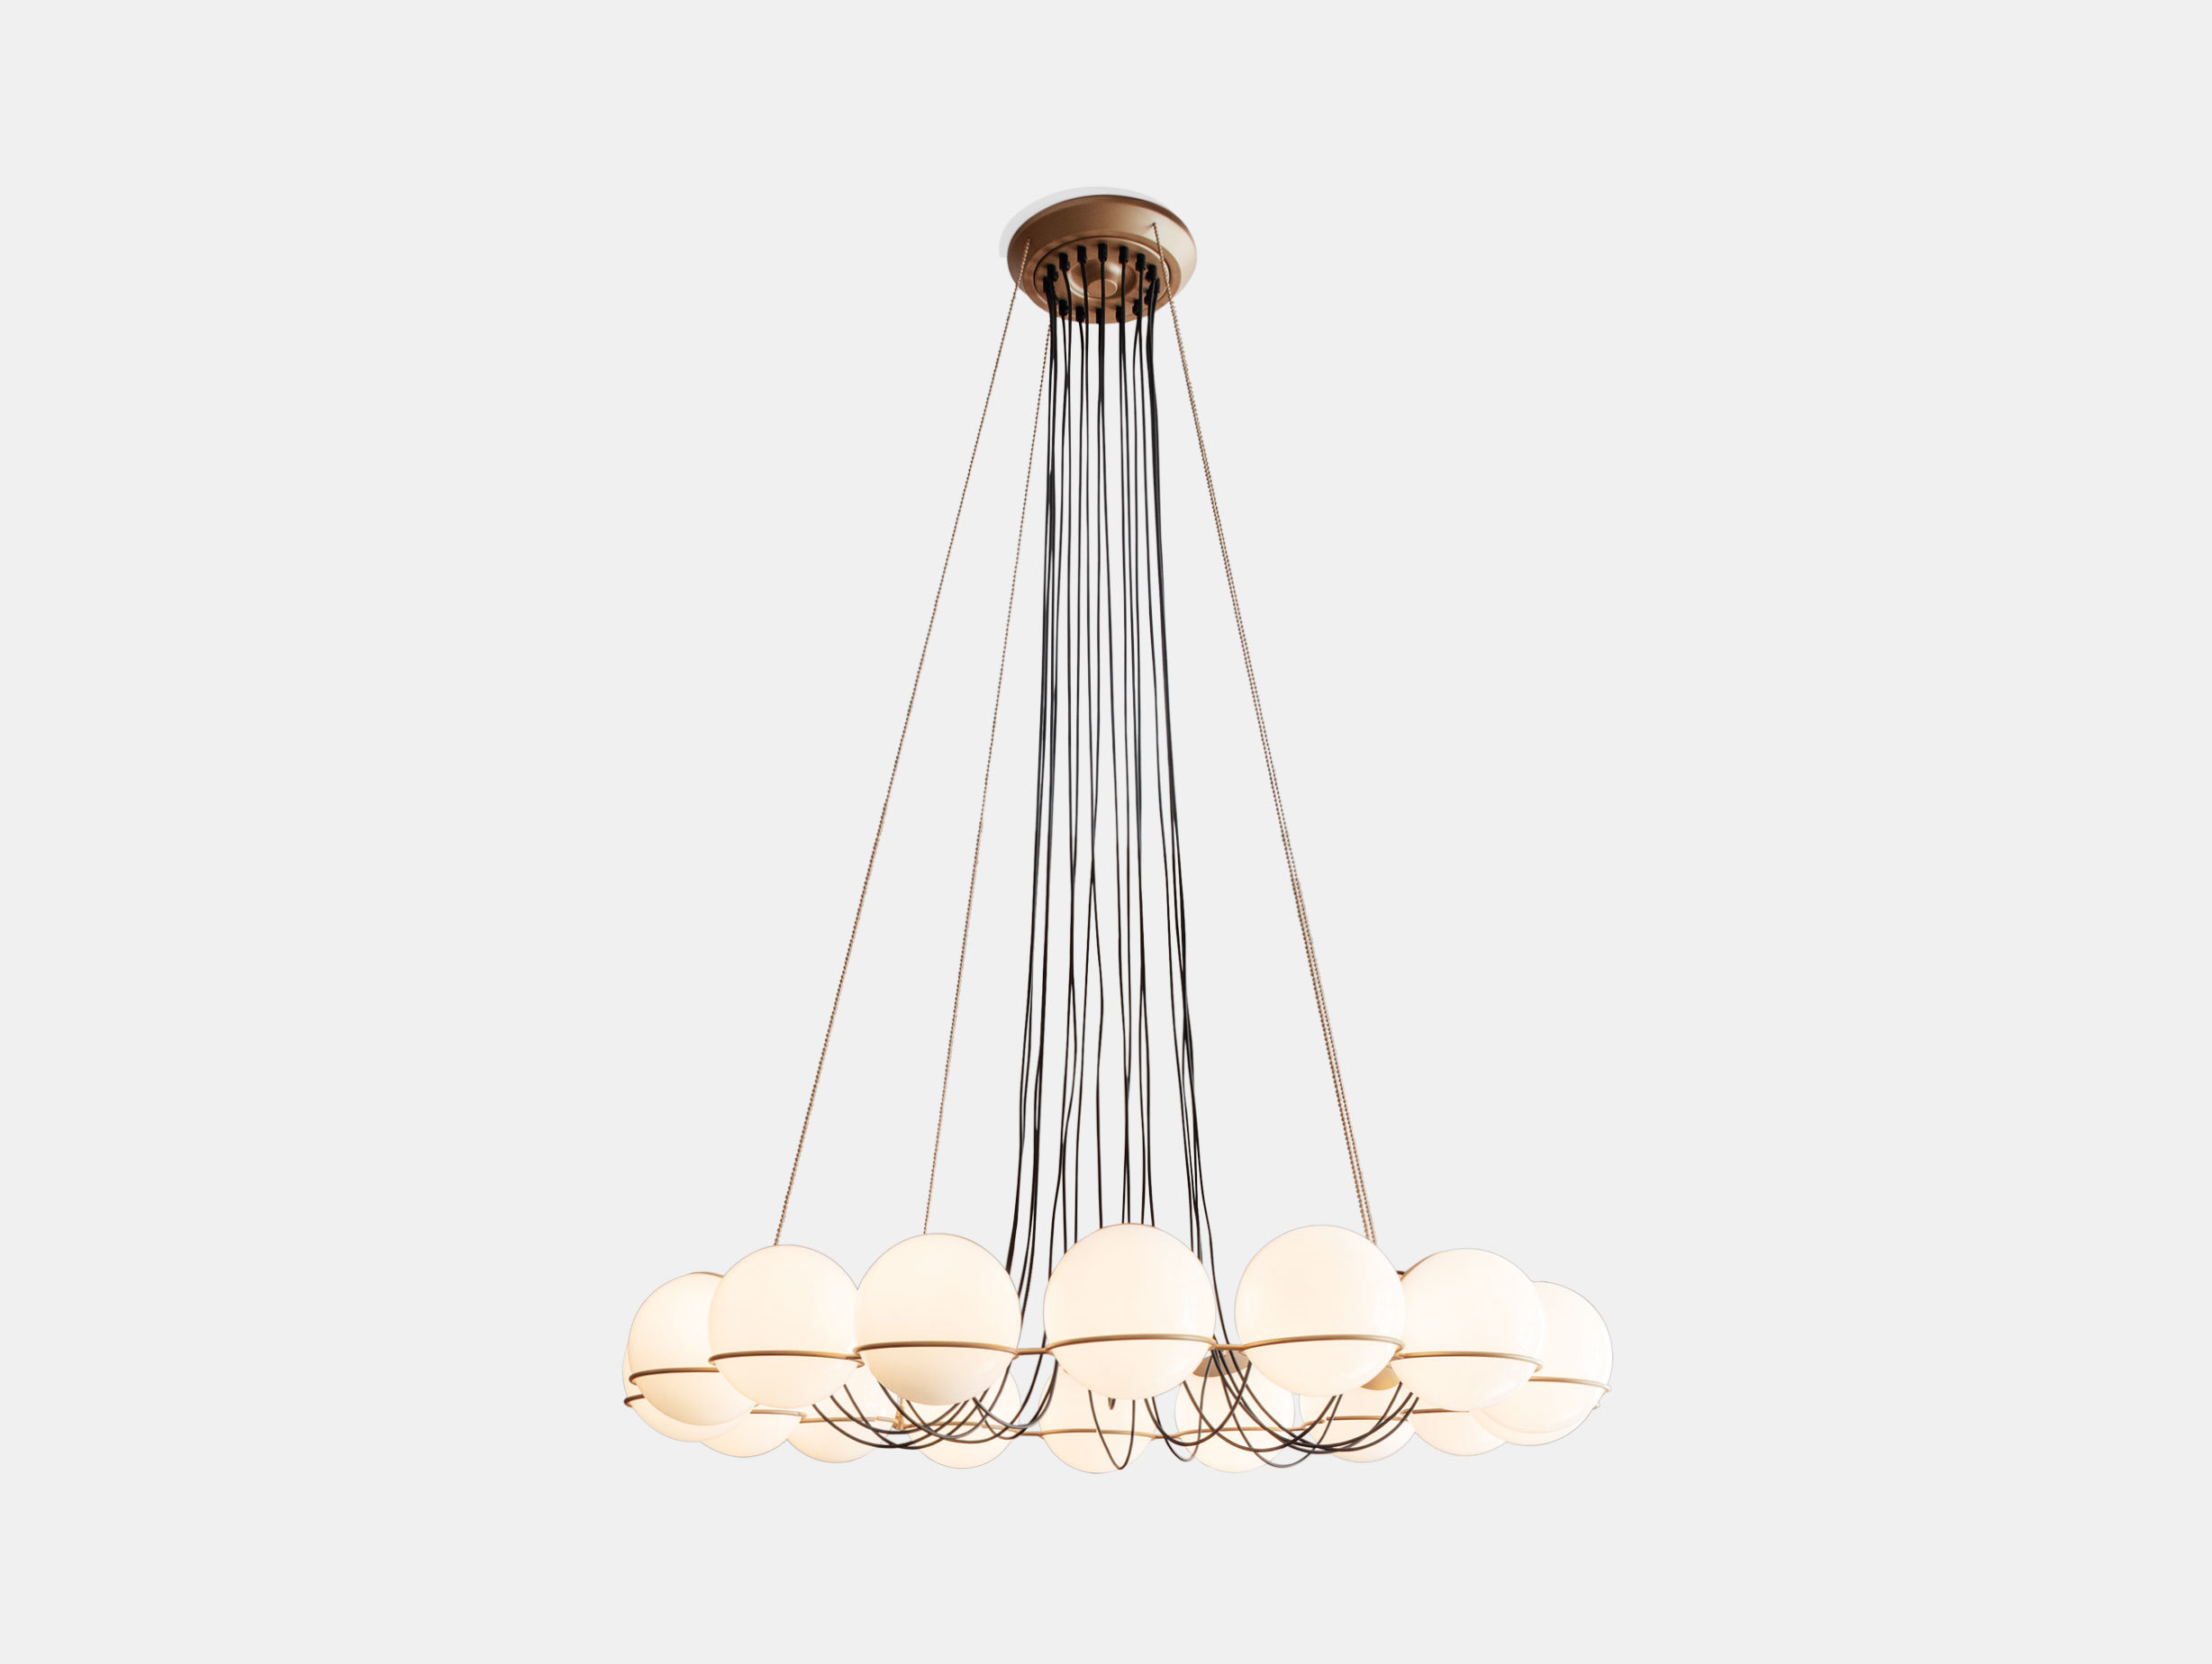 Astep Le Sfere Model 2019 Suspension Light